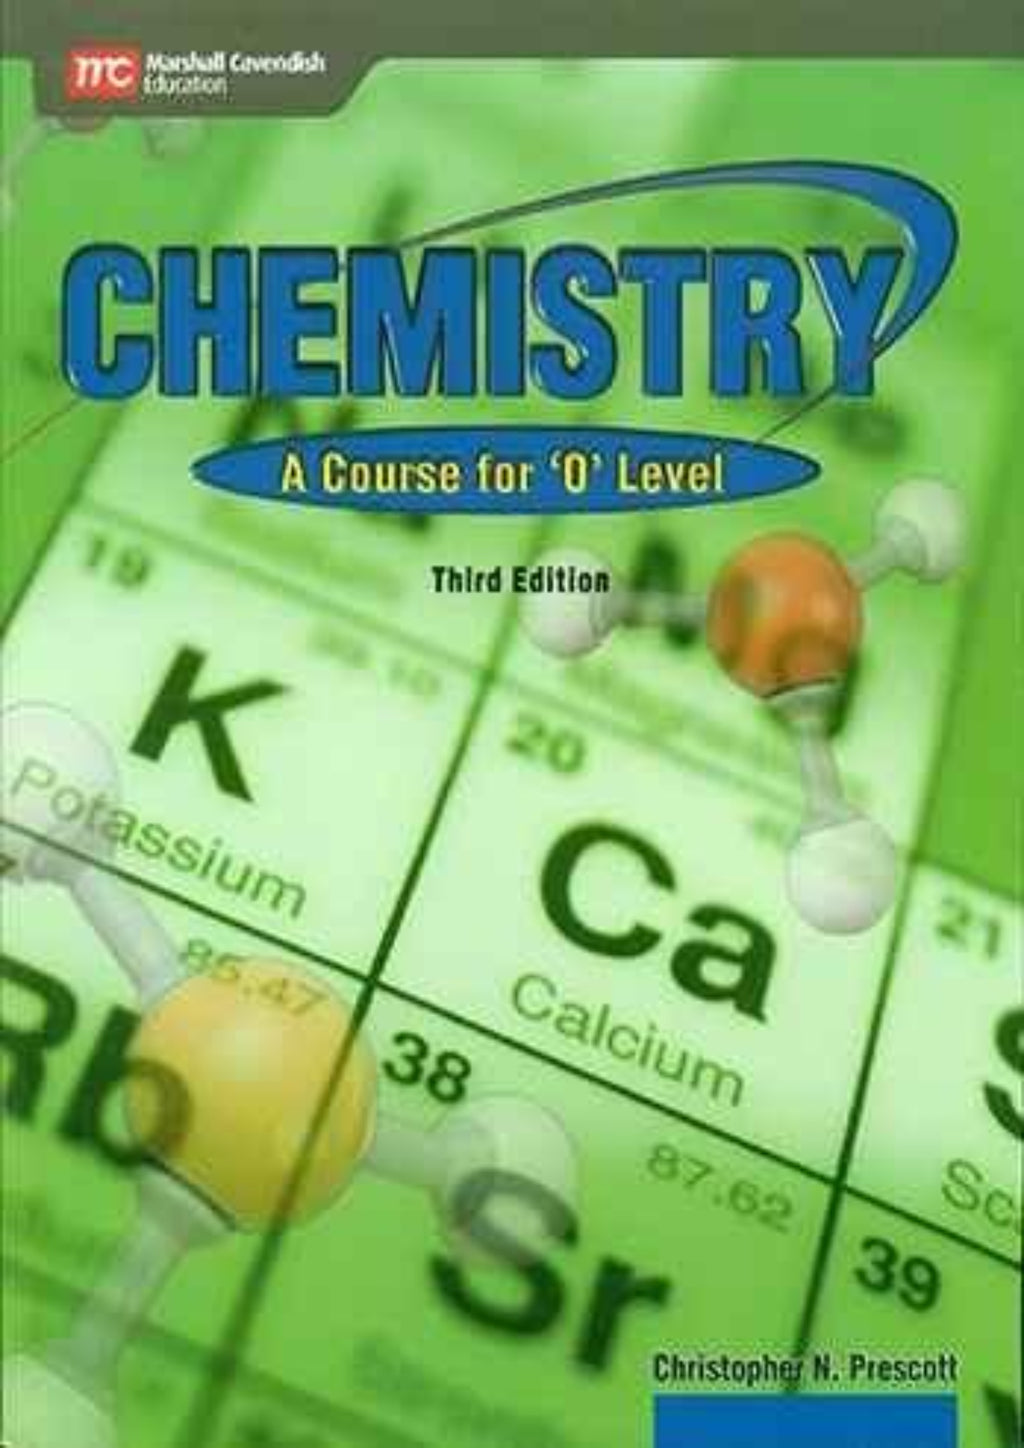 Cambridge O-Level Chemistry (5070) Coursebook by Christopher N. Prescott (3rd Edition)